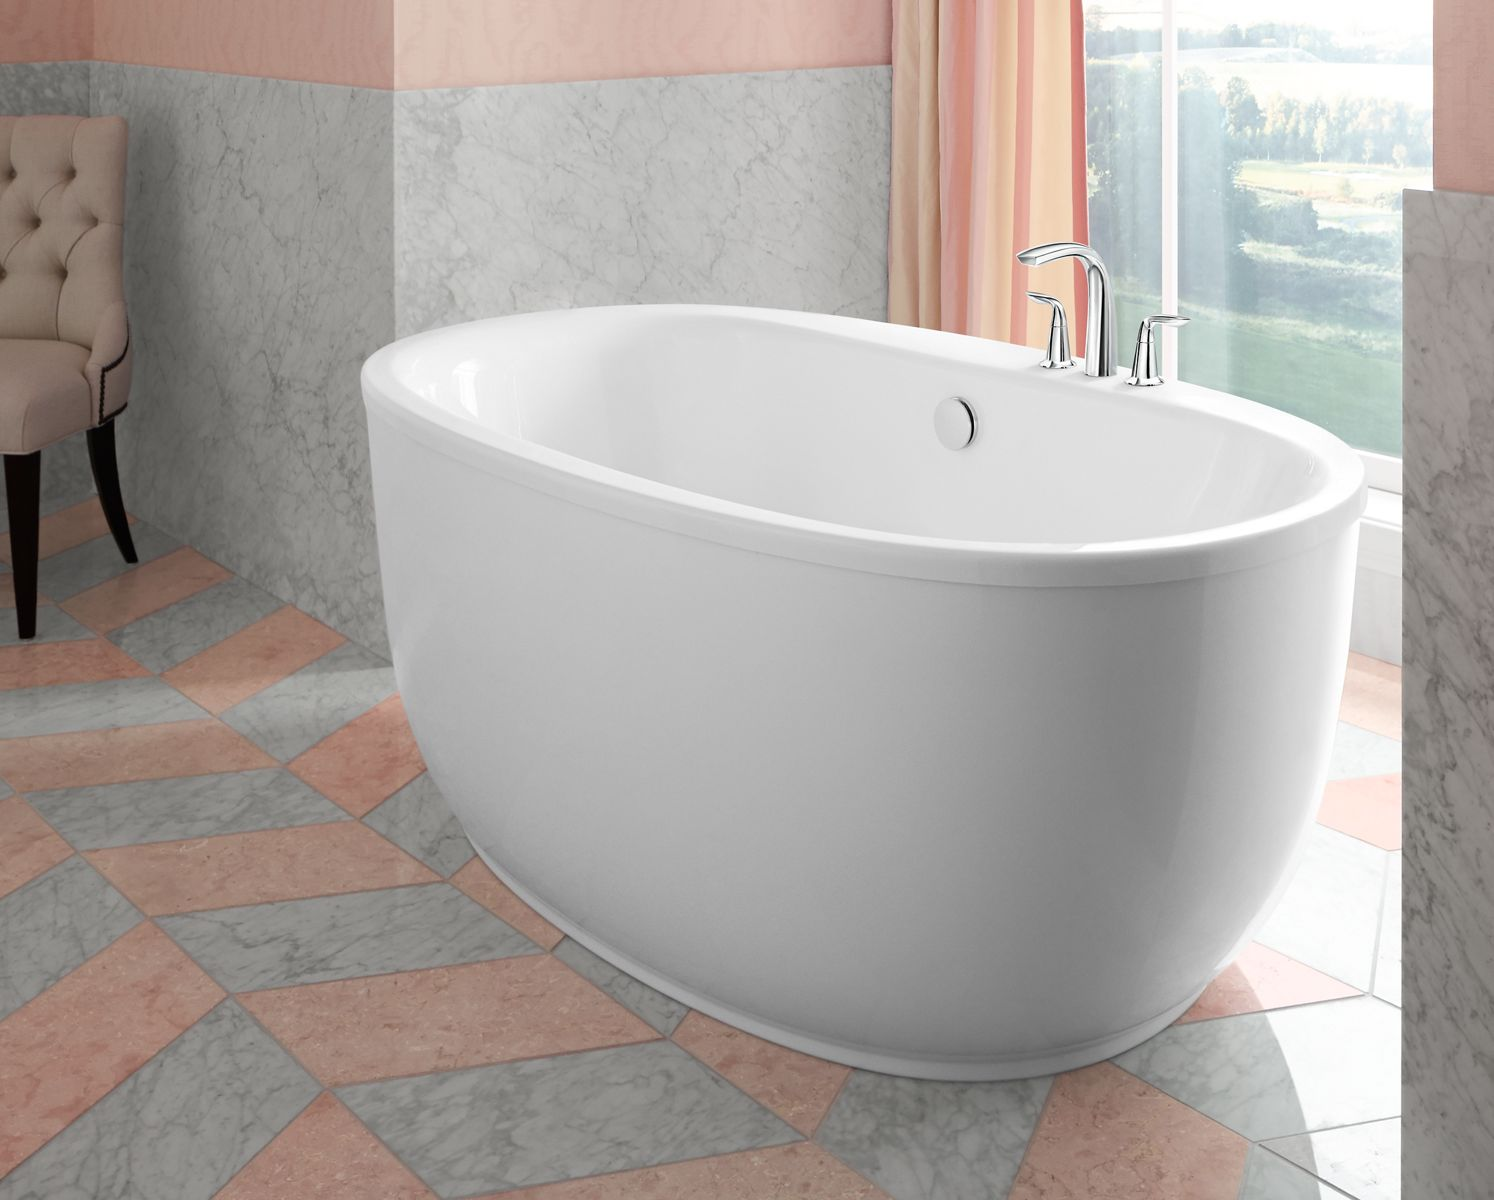 Recommendations on how to wash acrylic bathtubs